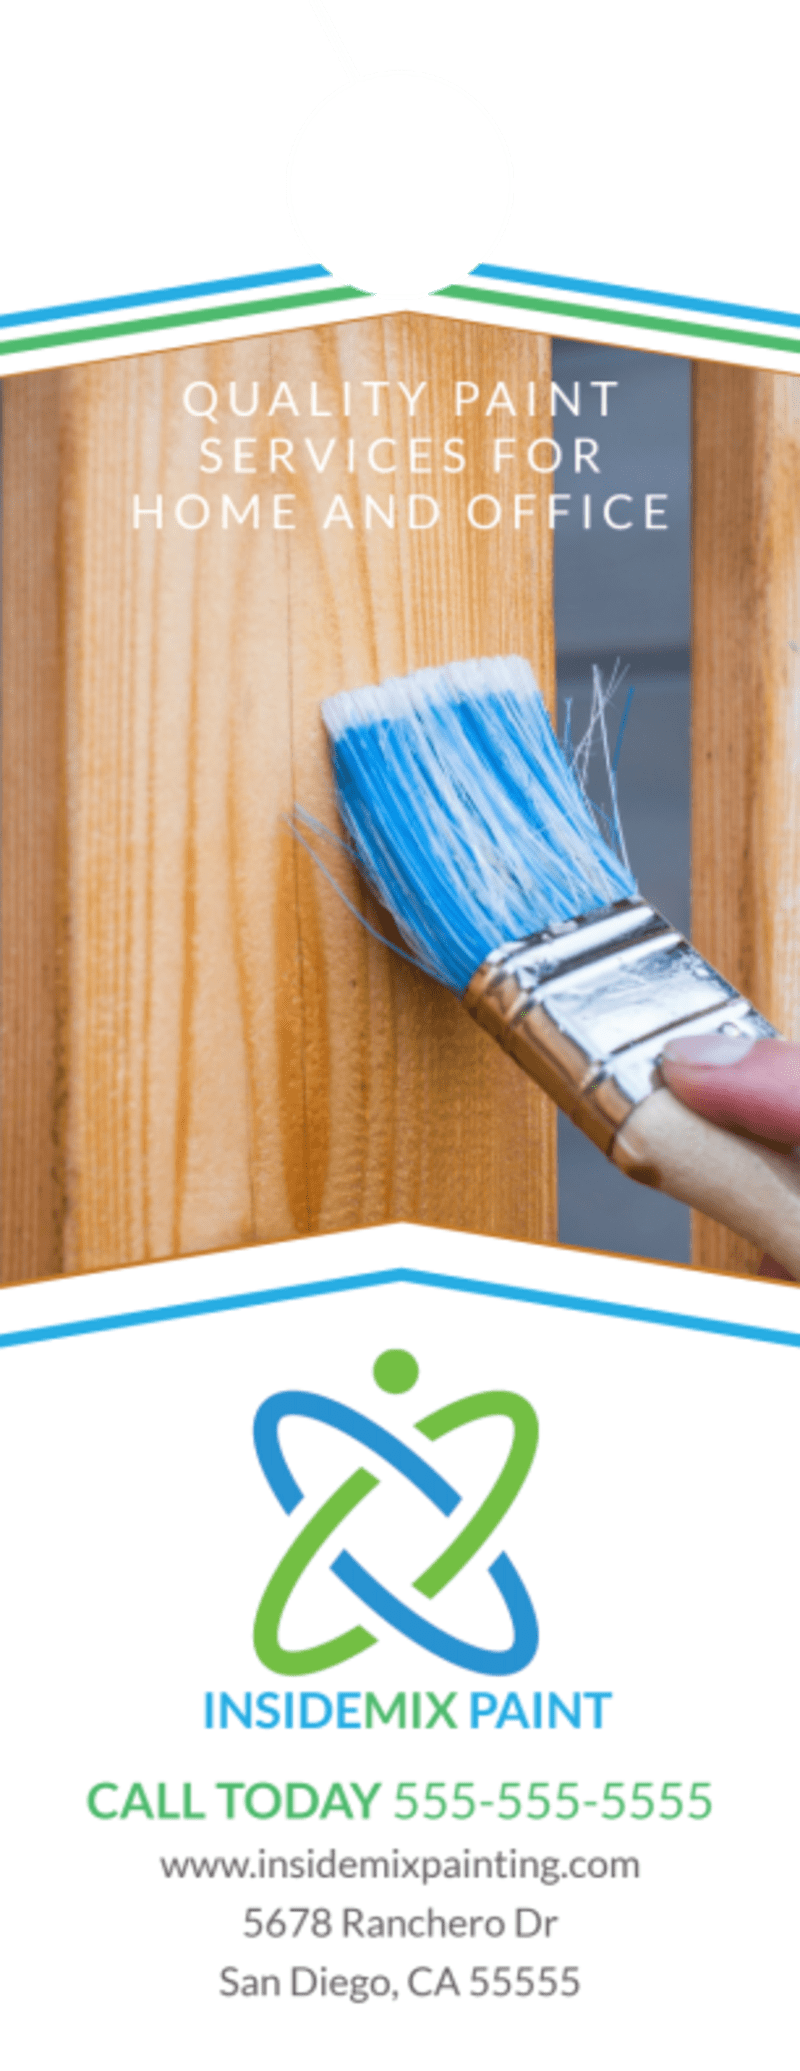 Quality Painting Door Hanger Template Preview 2